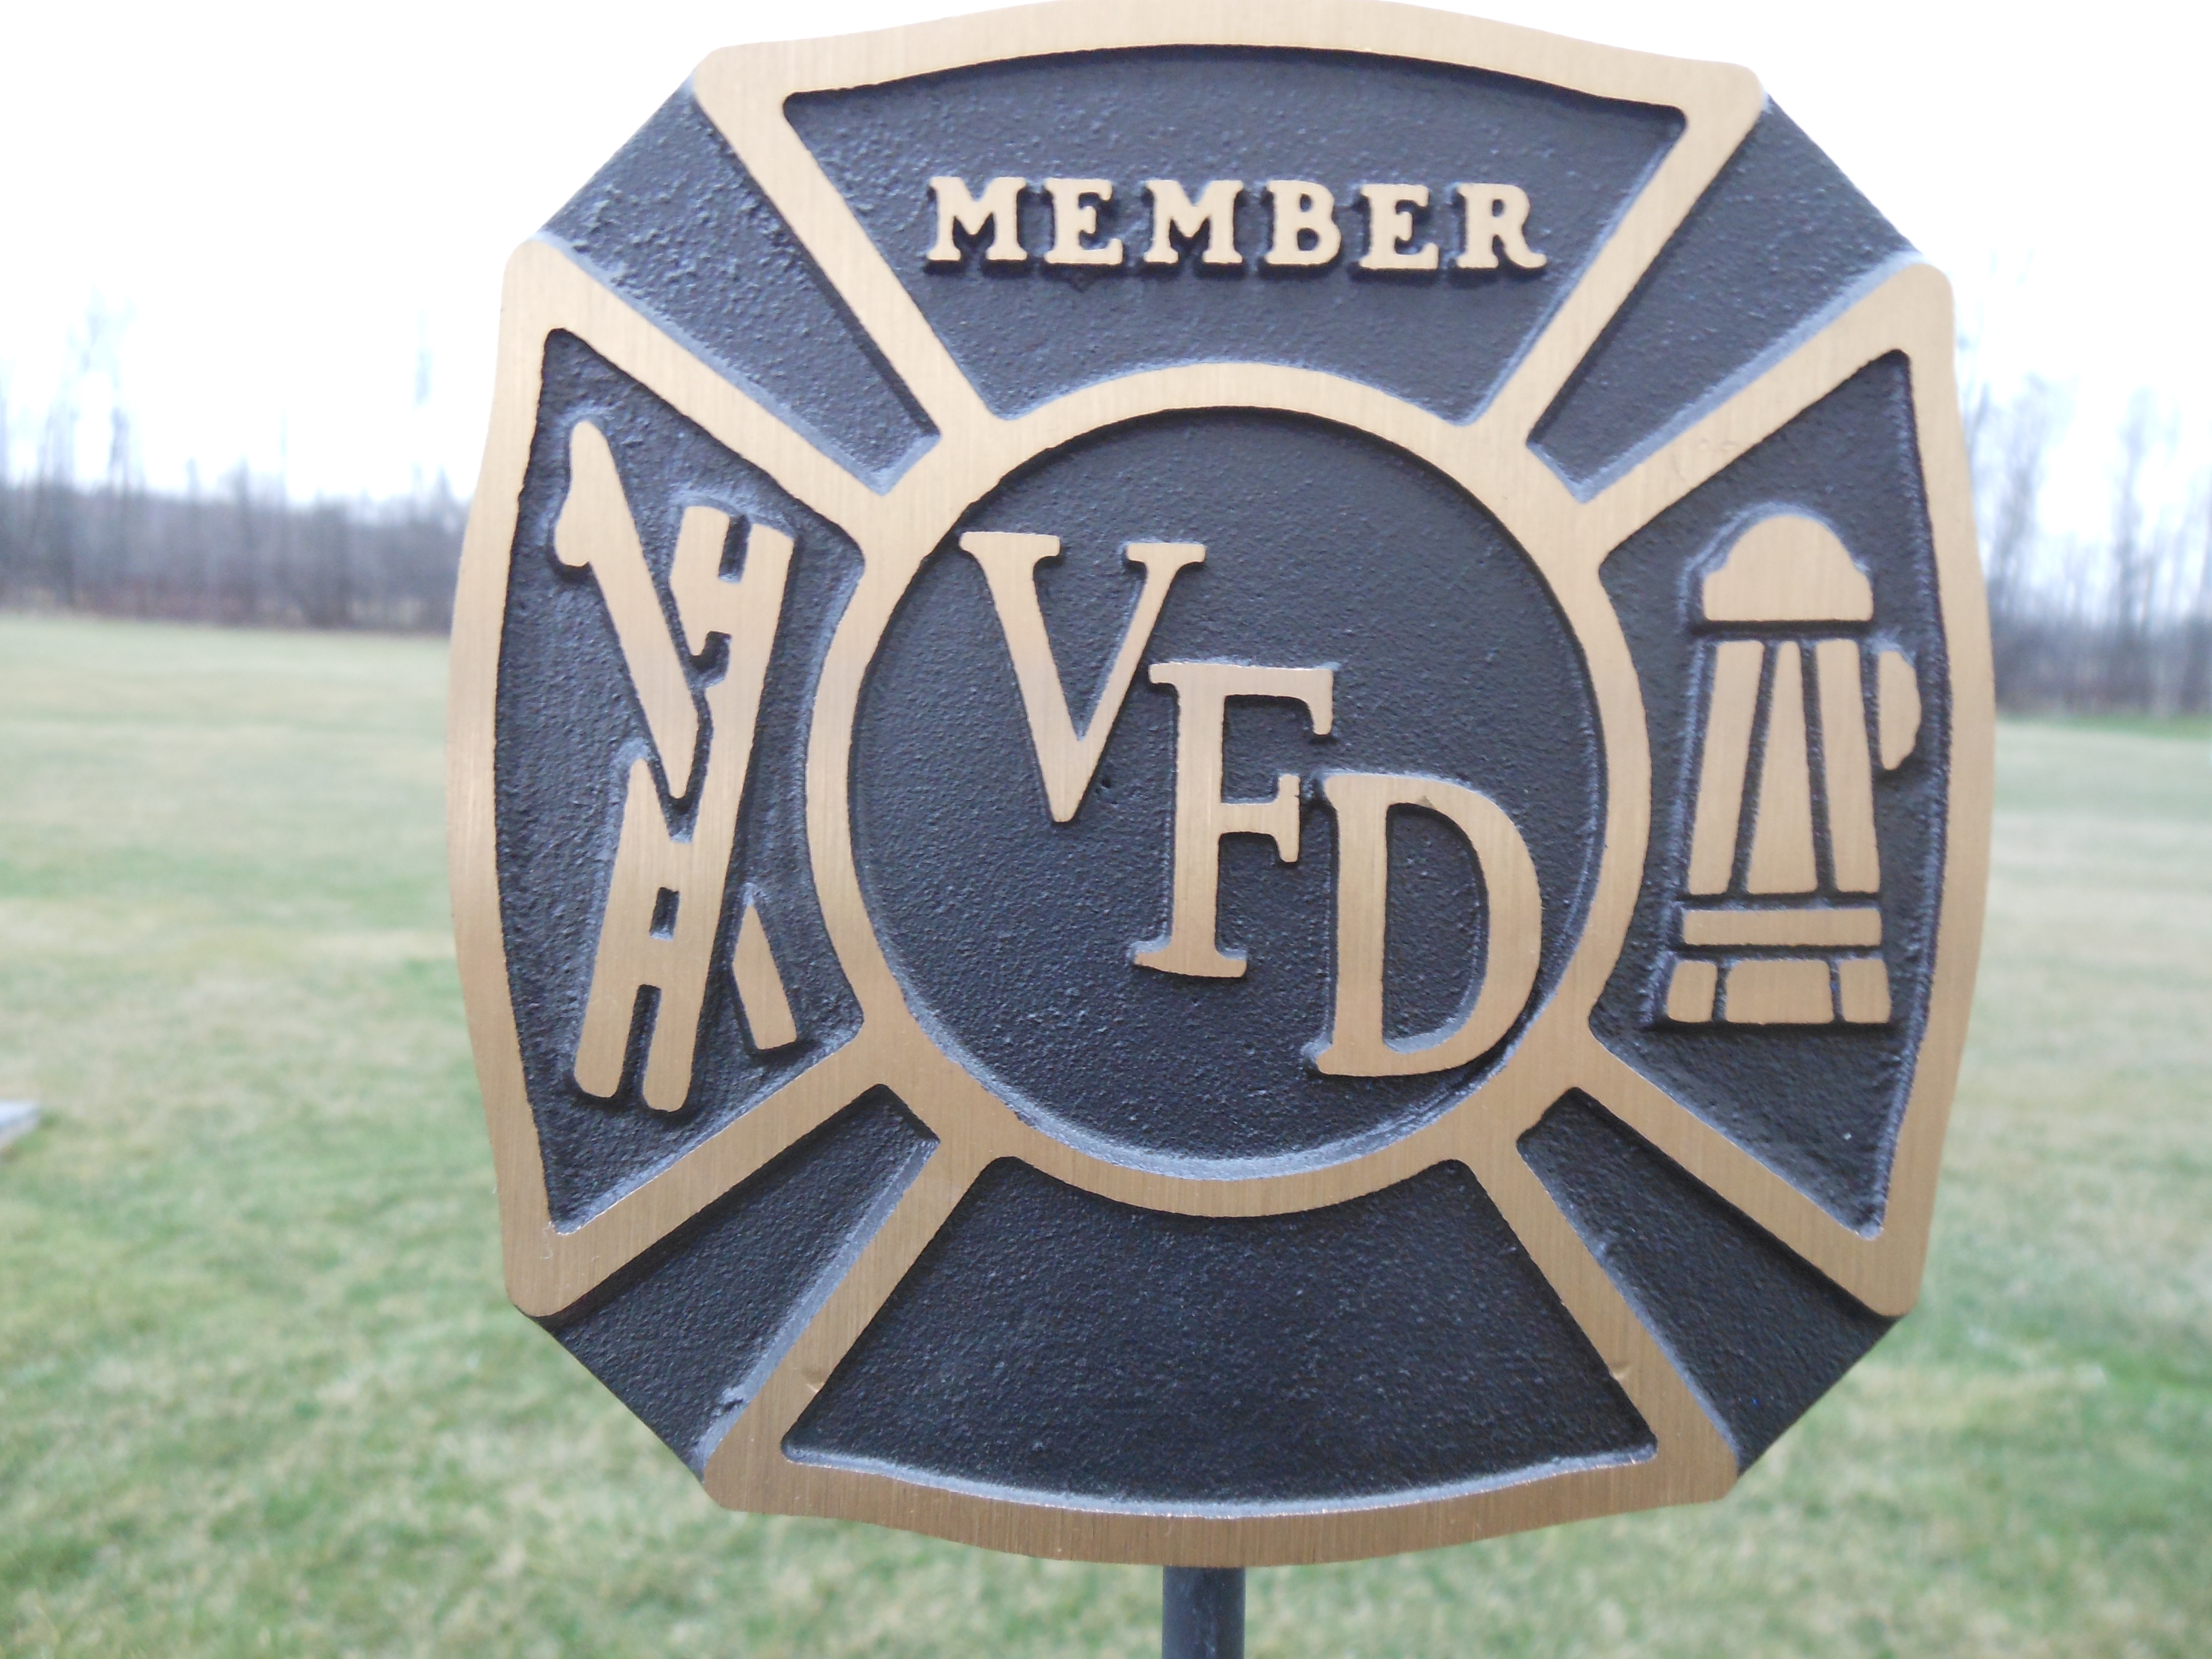 Volunteer Fire Department bronze flag holder